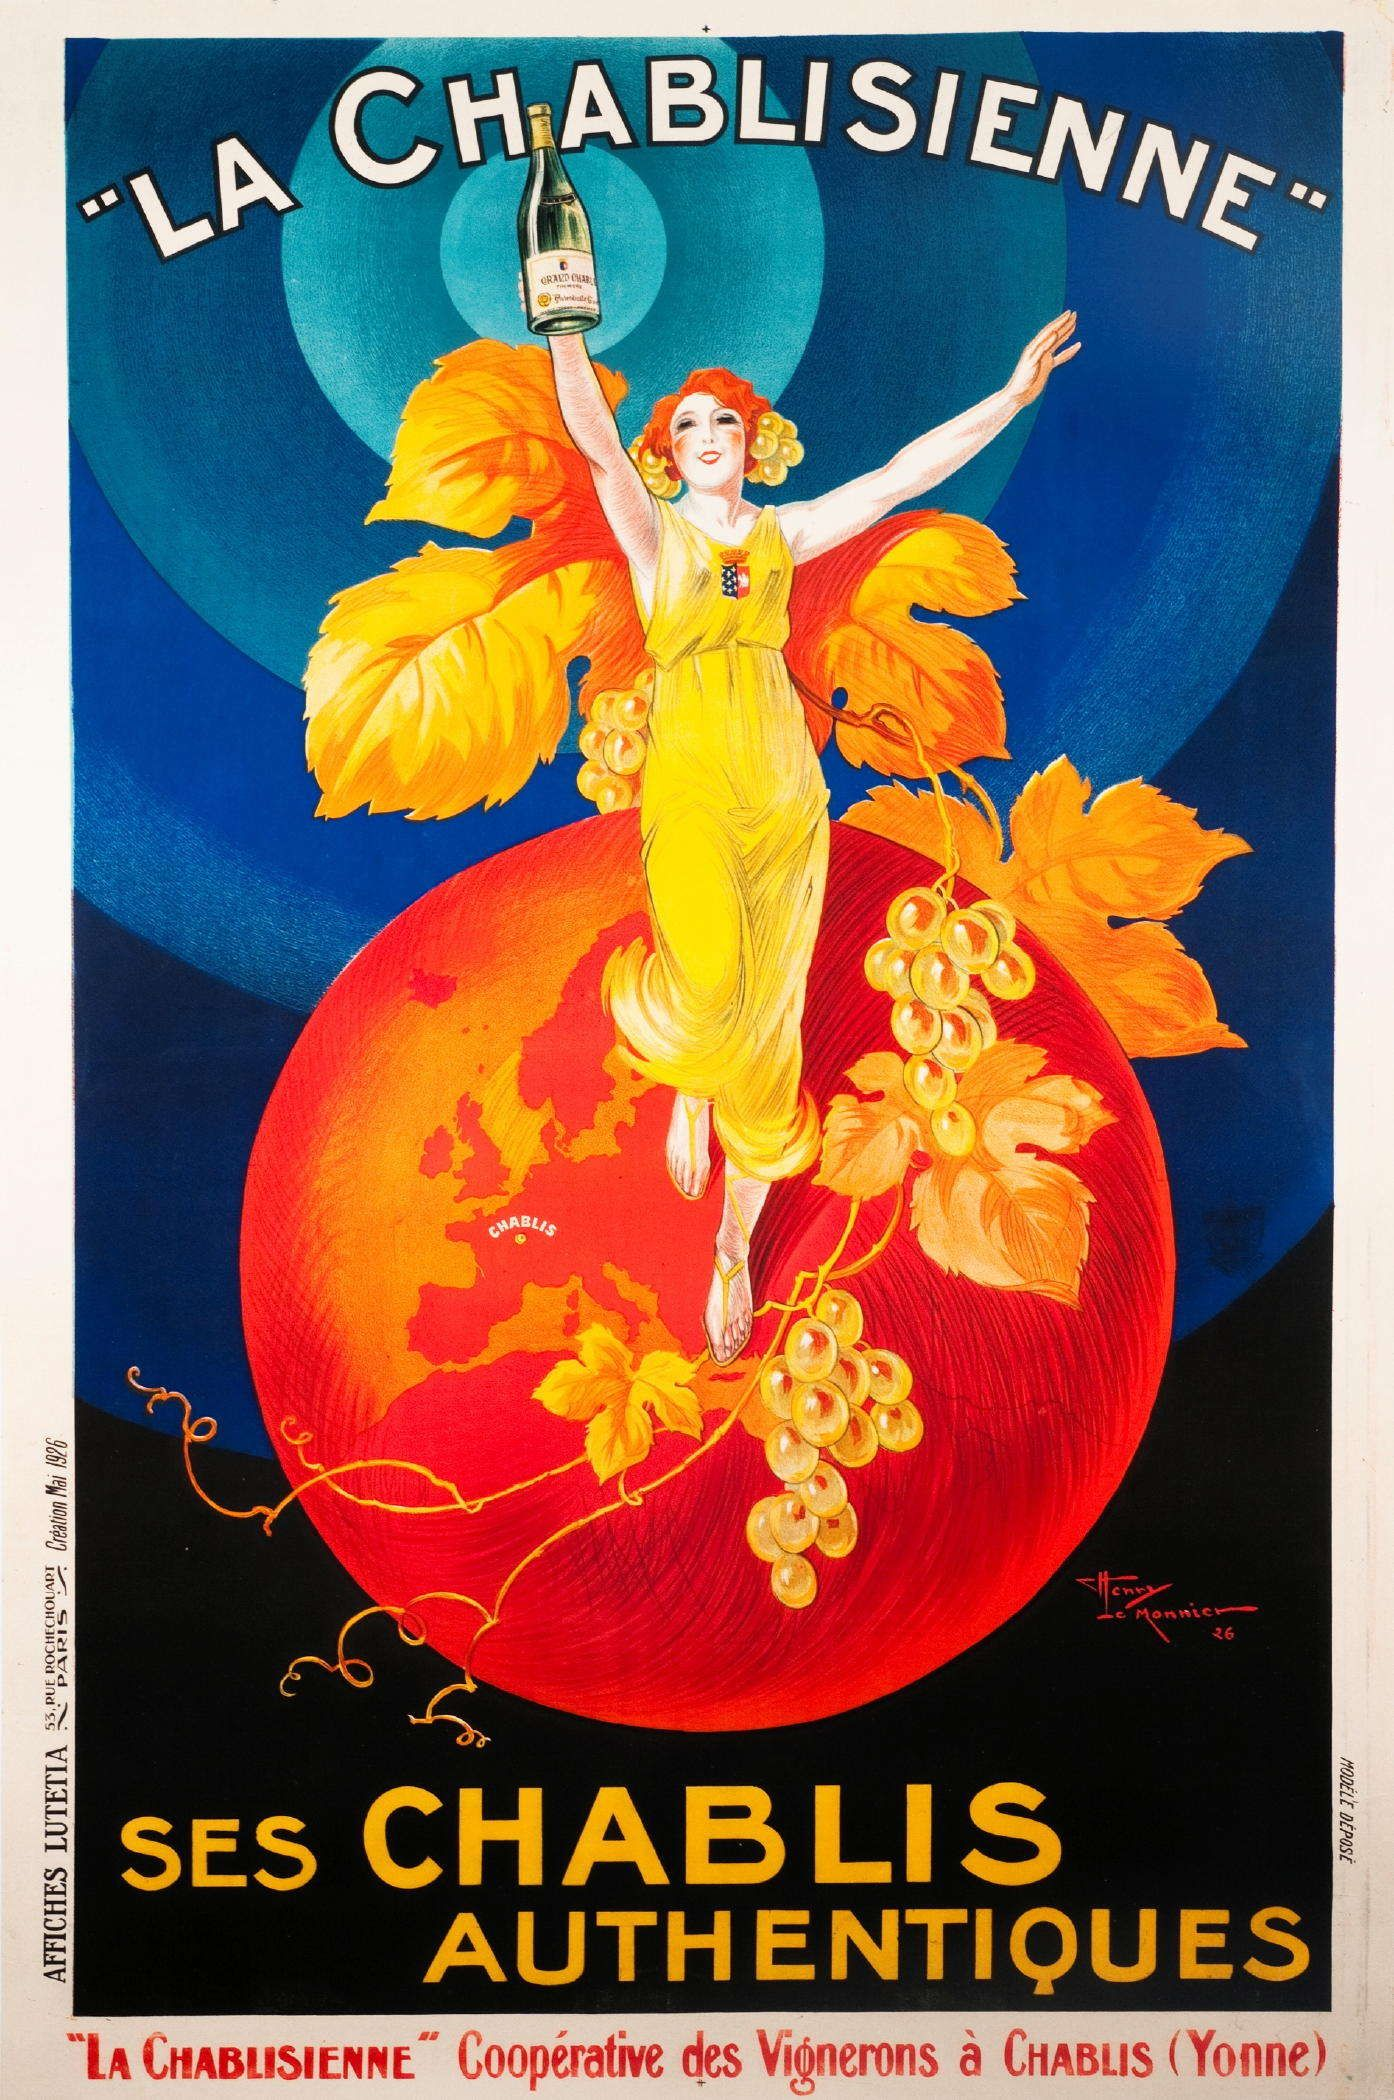 Vintage Champagne Poster La Chablisienne Ses Chablis Authentiques Vintage Poster Art Wine Poster Vintage French Posters